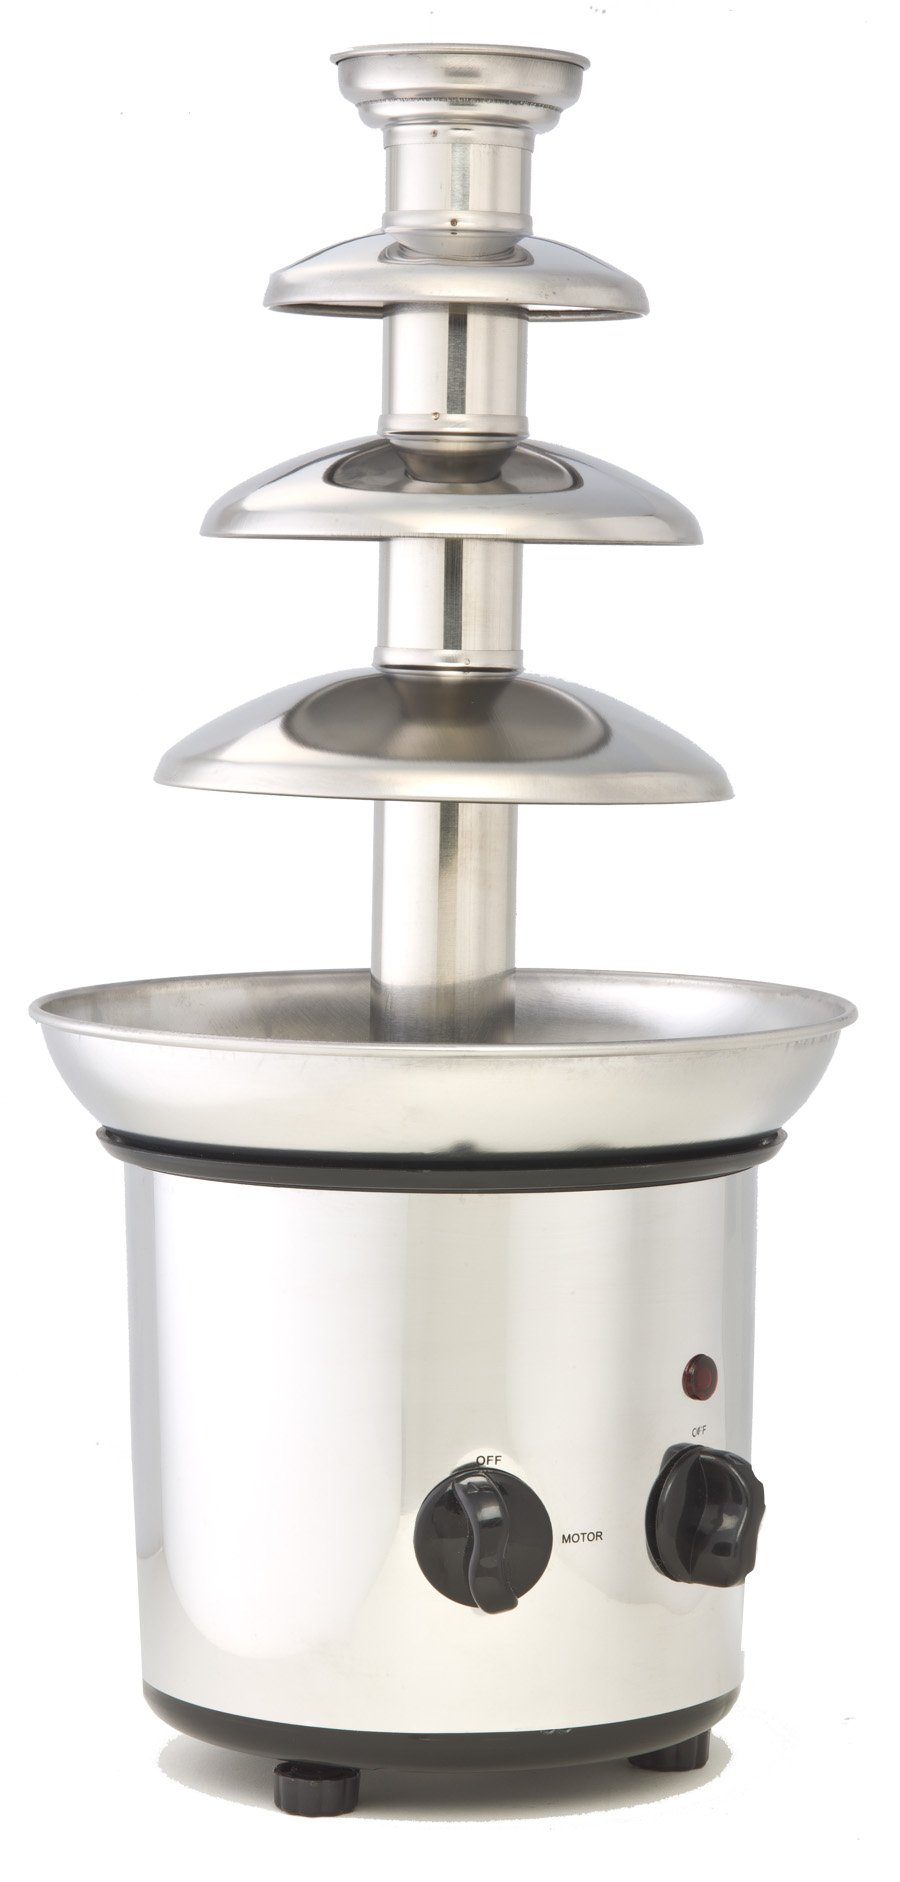 ClearMax Electric 3 Tier Chocolate Fountain, Stainless Steel